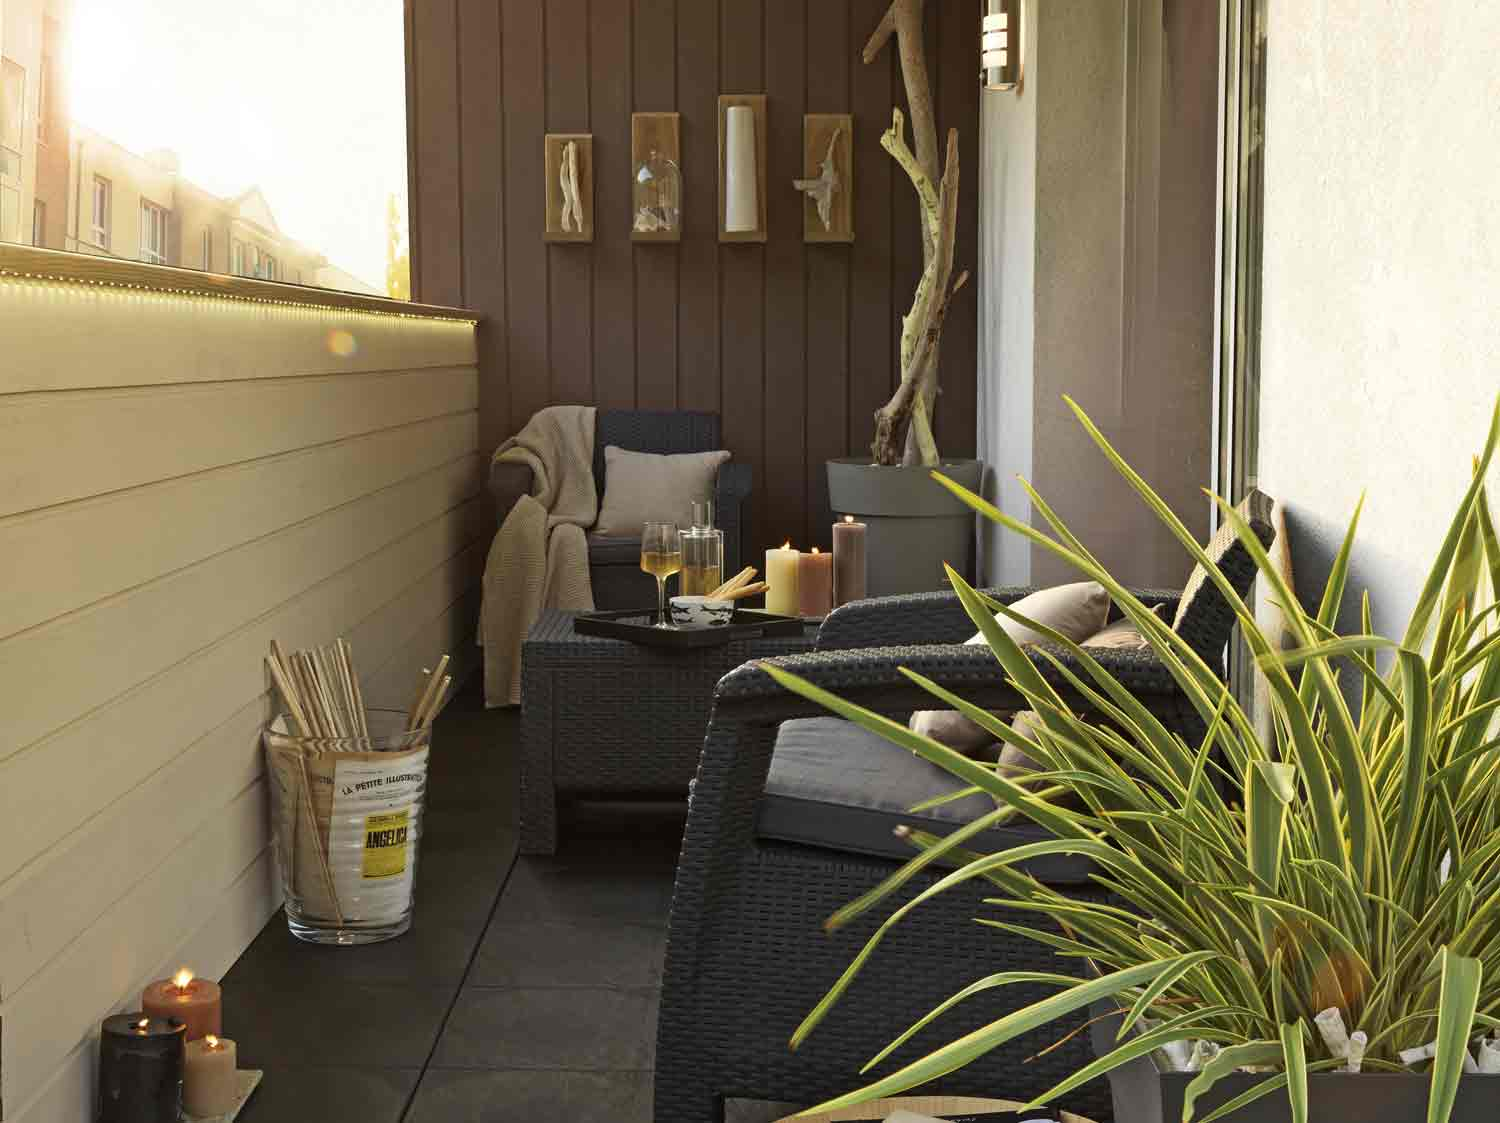 Jardiner sur votre balcon leroy merlin for Bien amenager son salon